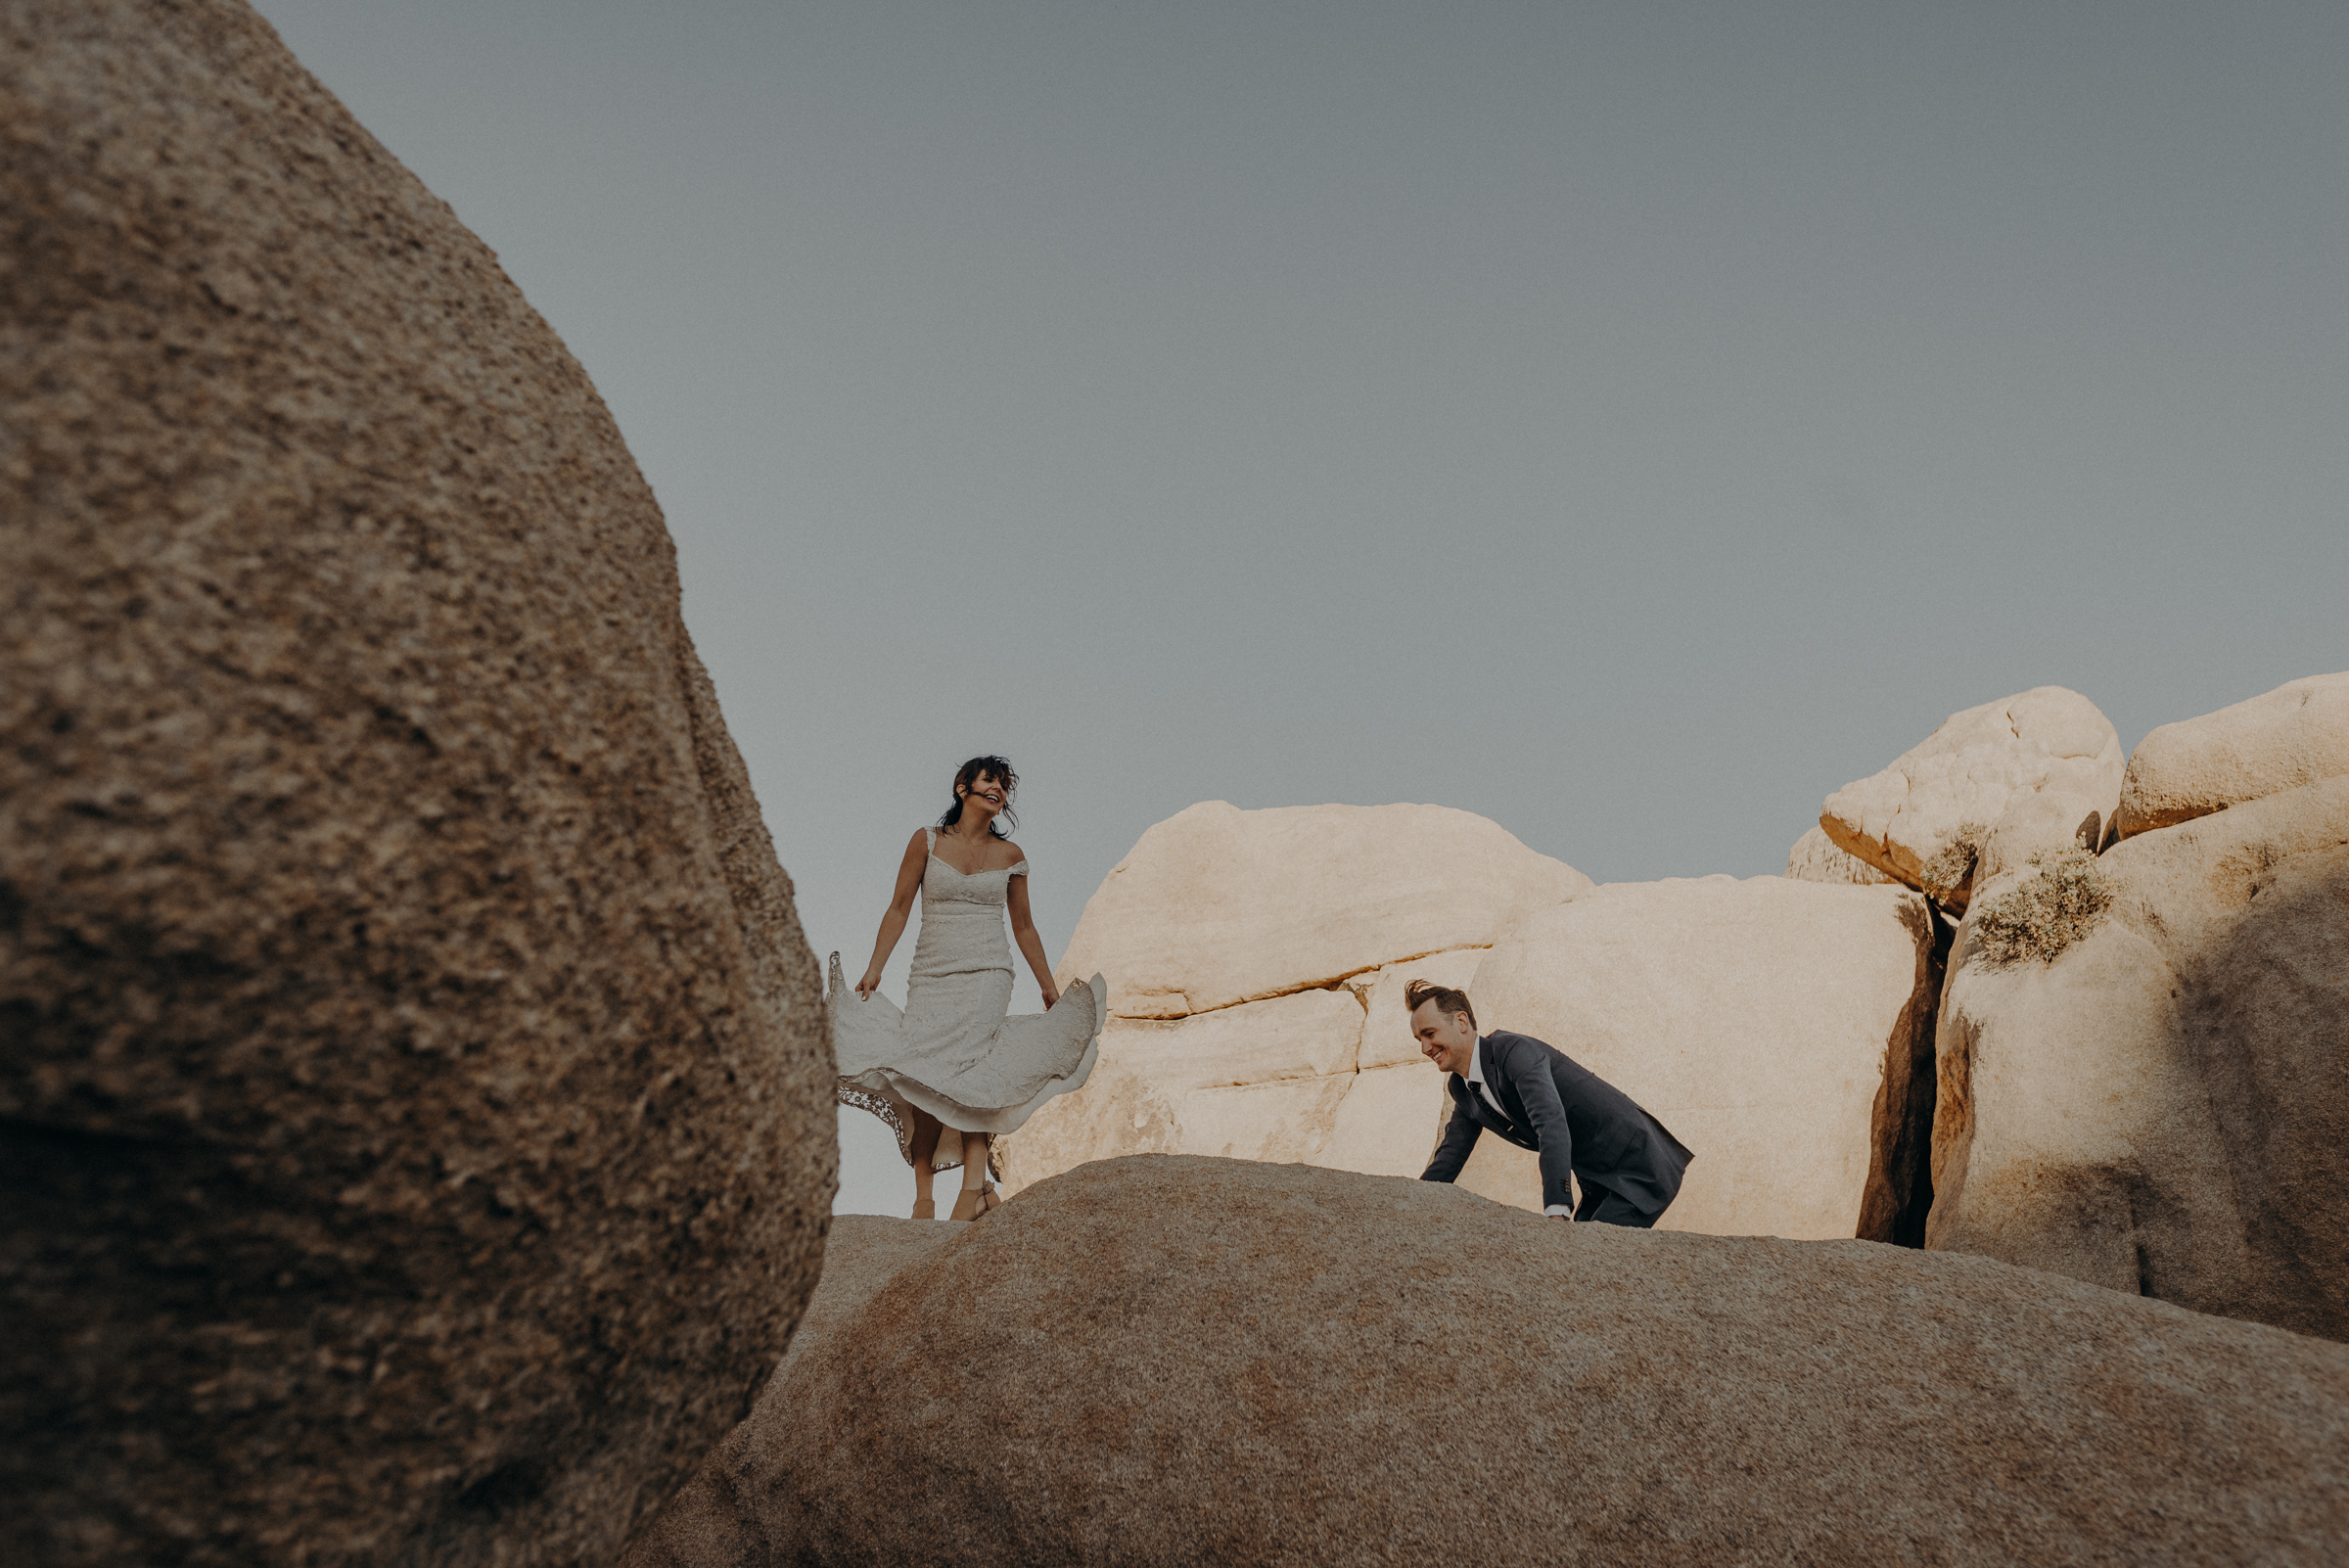 Joshua Tree Elopement - Los Angeles Wedding Photographers - IsaiahAndTaylor.com-066.jpg